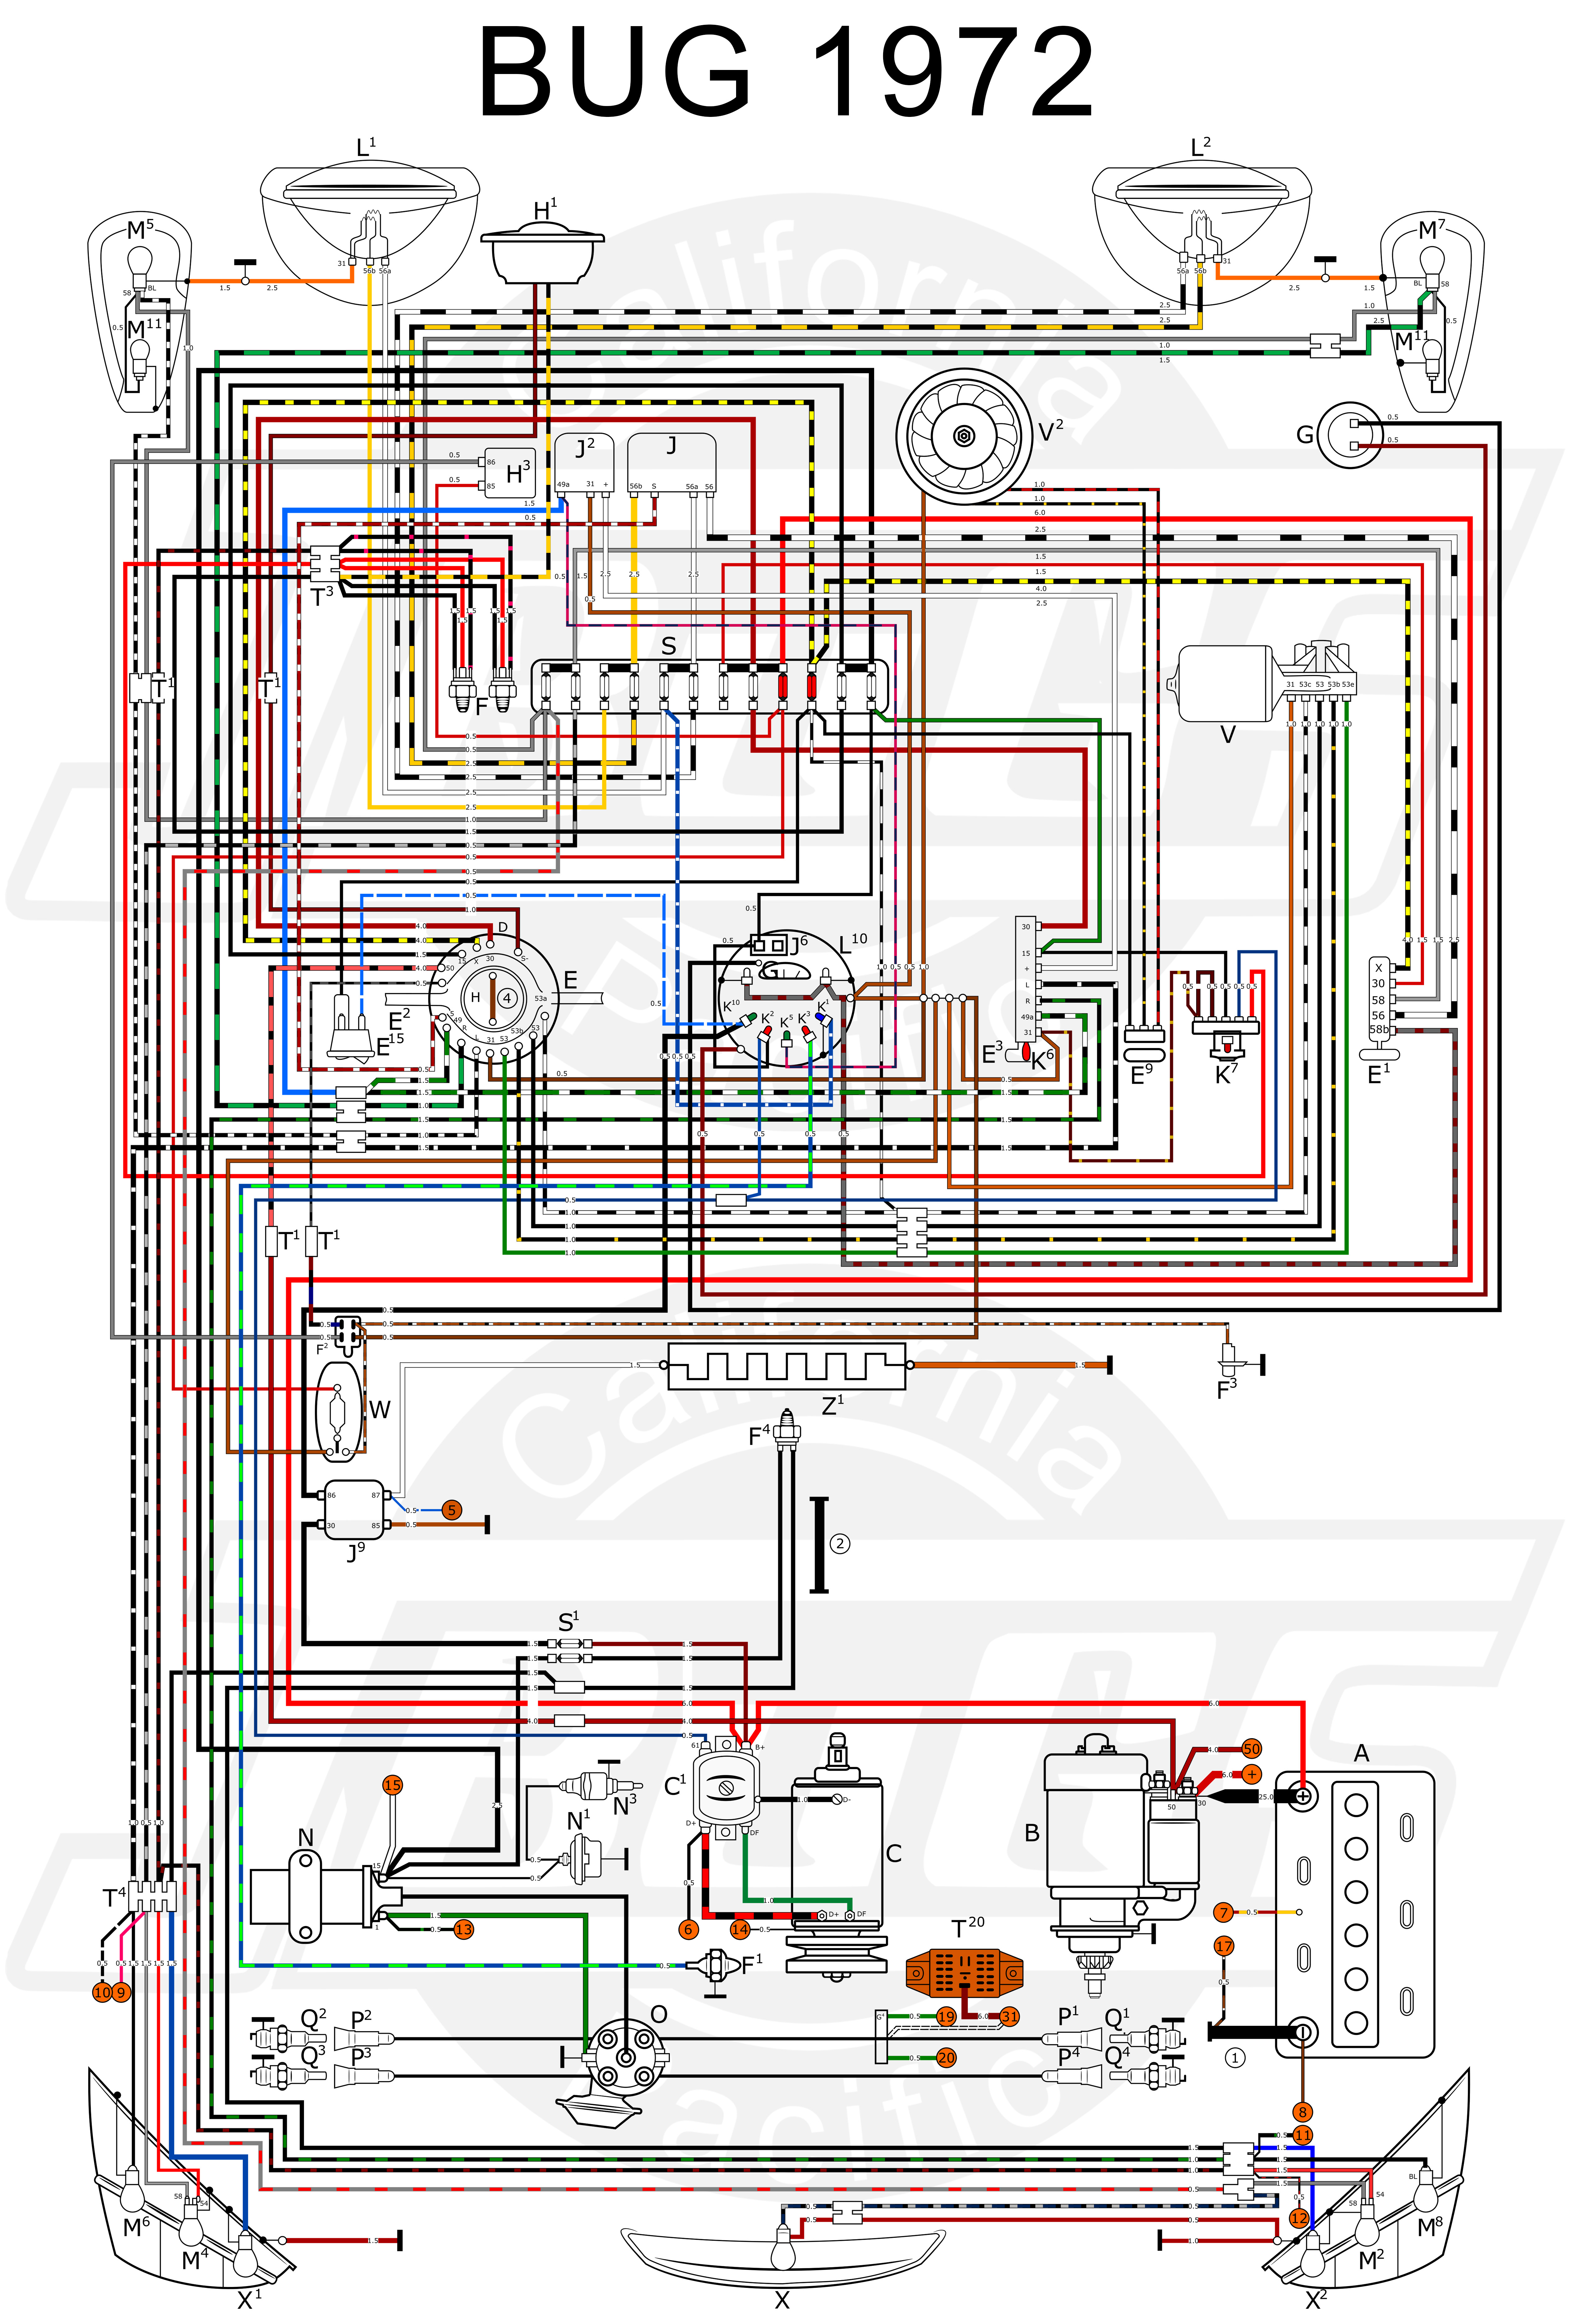 vw bug engine wiring wiring info u2022 rh cardsbox co 2001 Volkswagen Beetle Wiring Diagram 73 VW Beetle Wiring Diagram